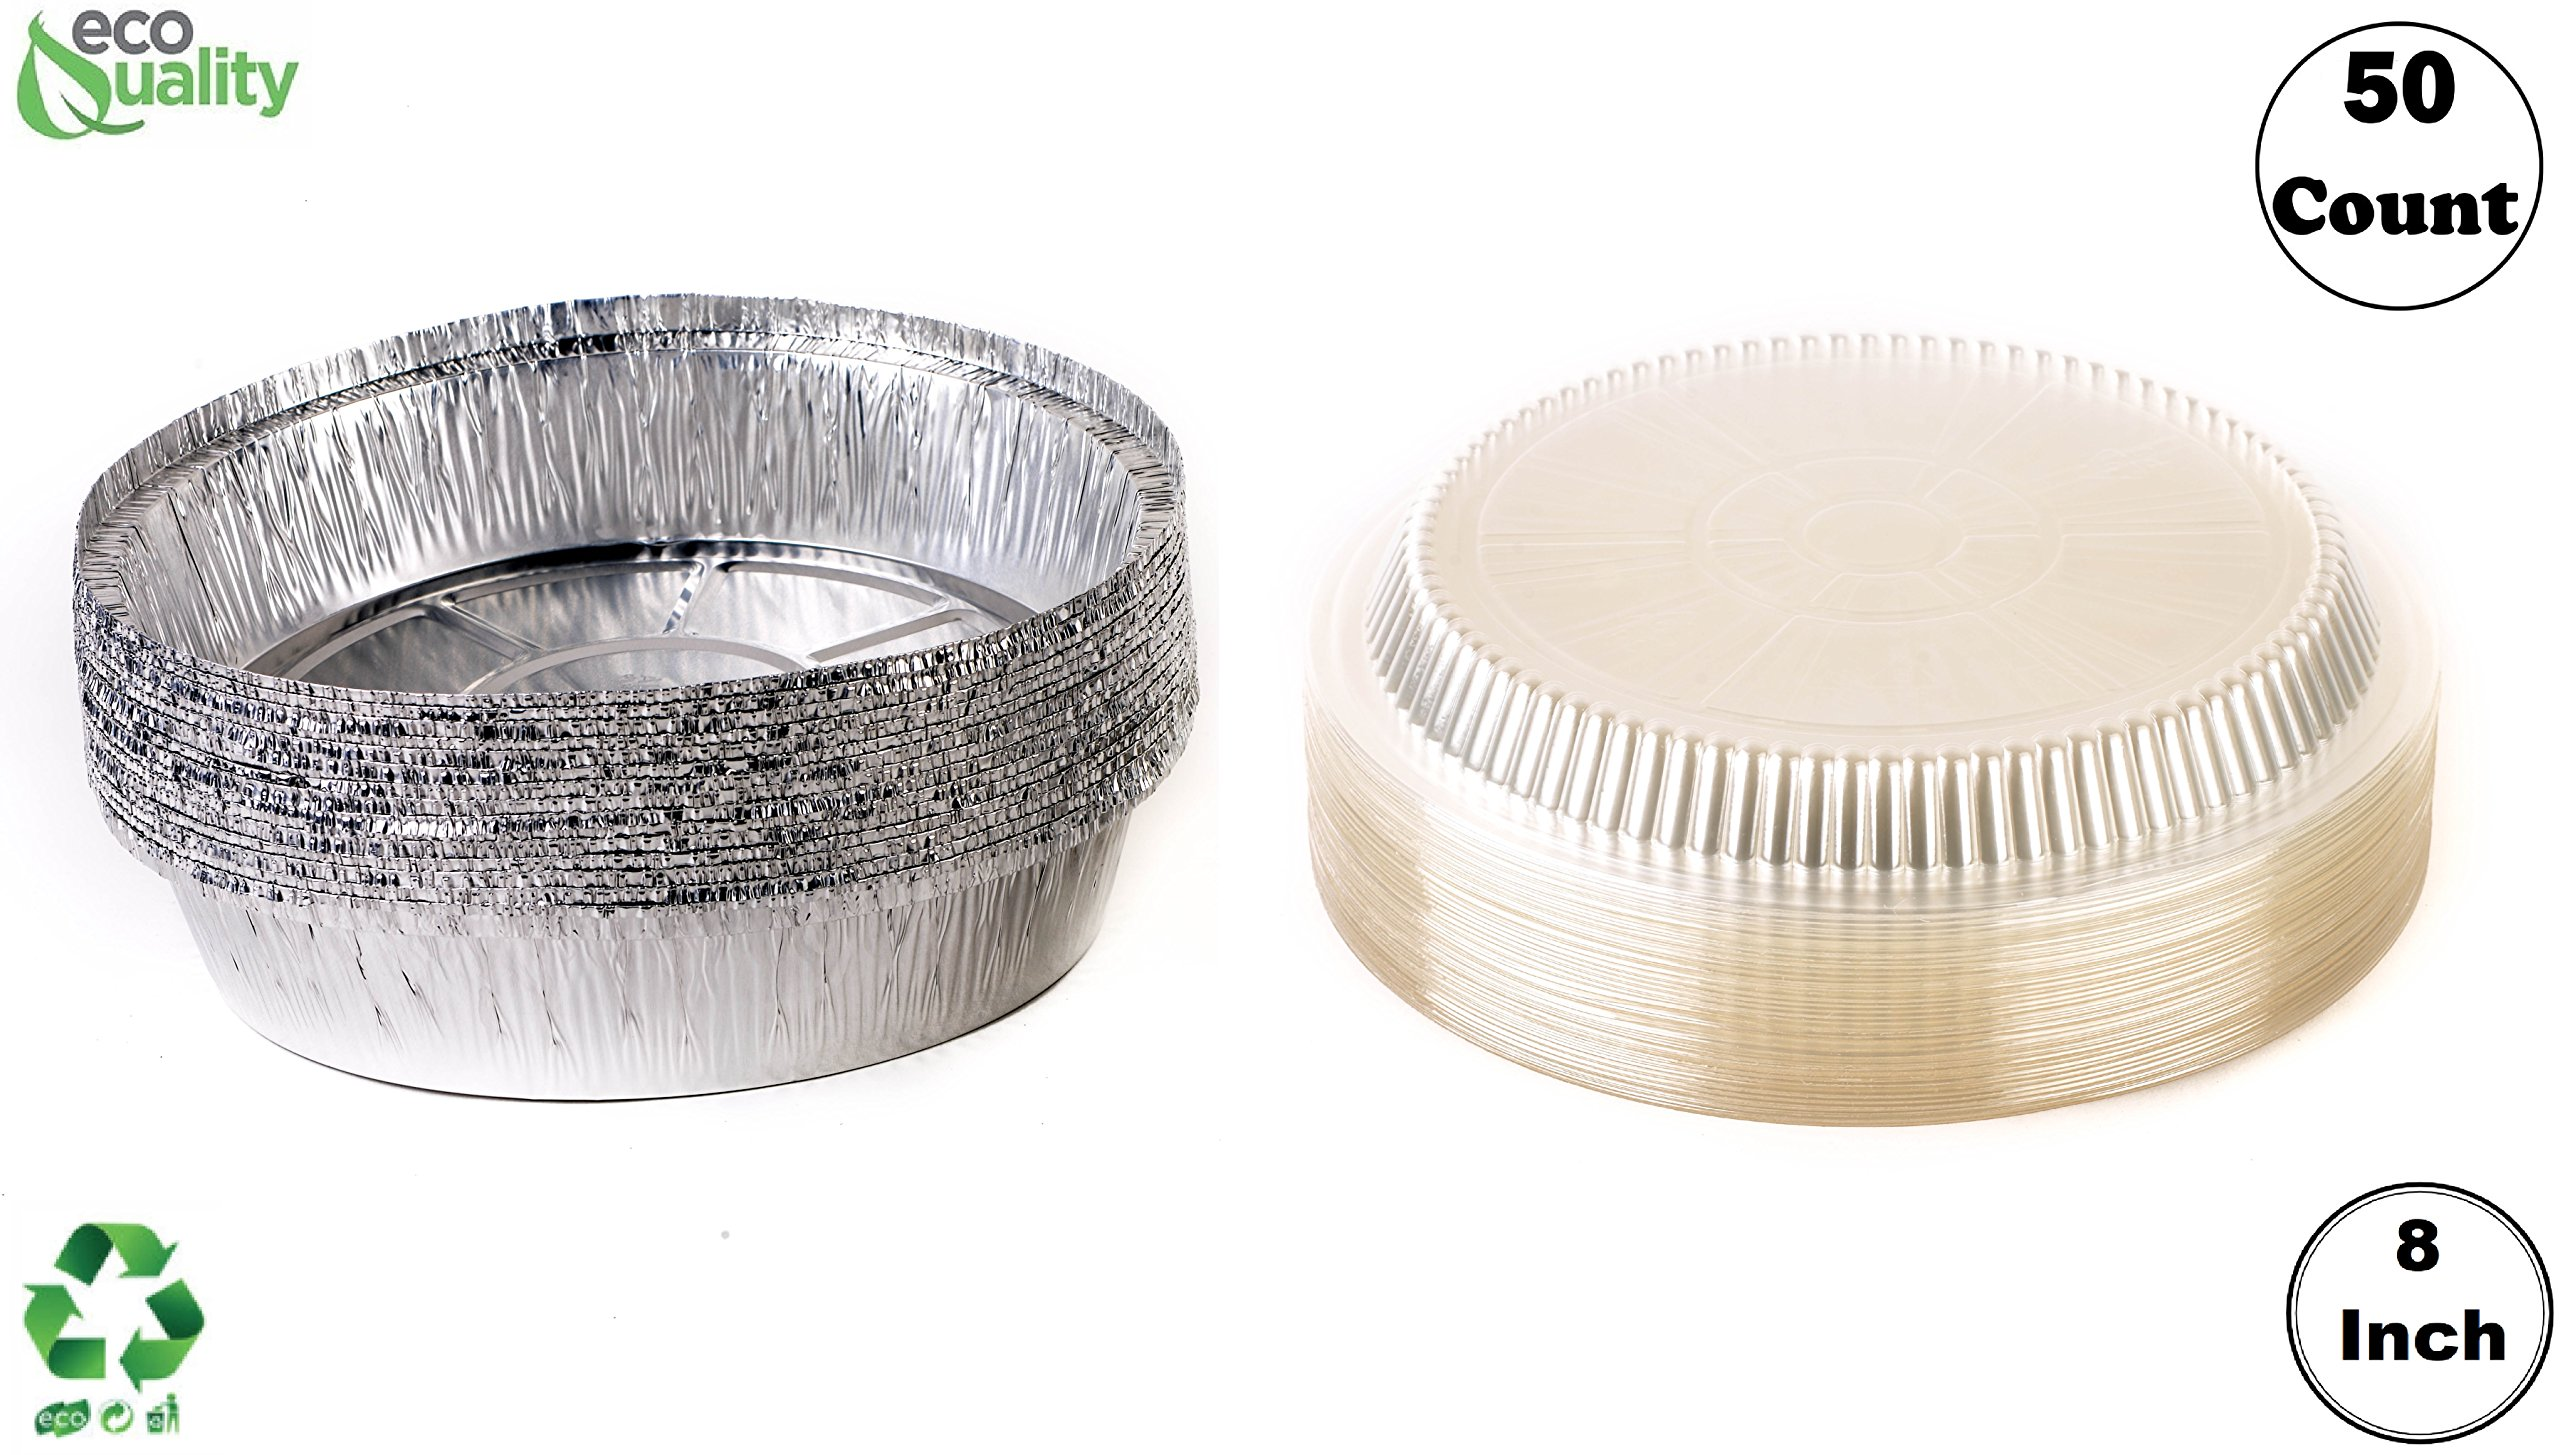 (50 Pack) - 8 Inch Disposable Round Aluminum Foil Take-Out Pans with Plastic Lids Set - Disposable Tin Containers, Perfect for Baking, Cooking, Catering, Parties, Restaurants by EcoQuality